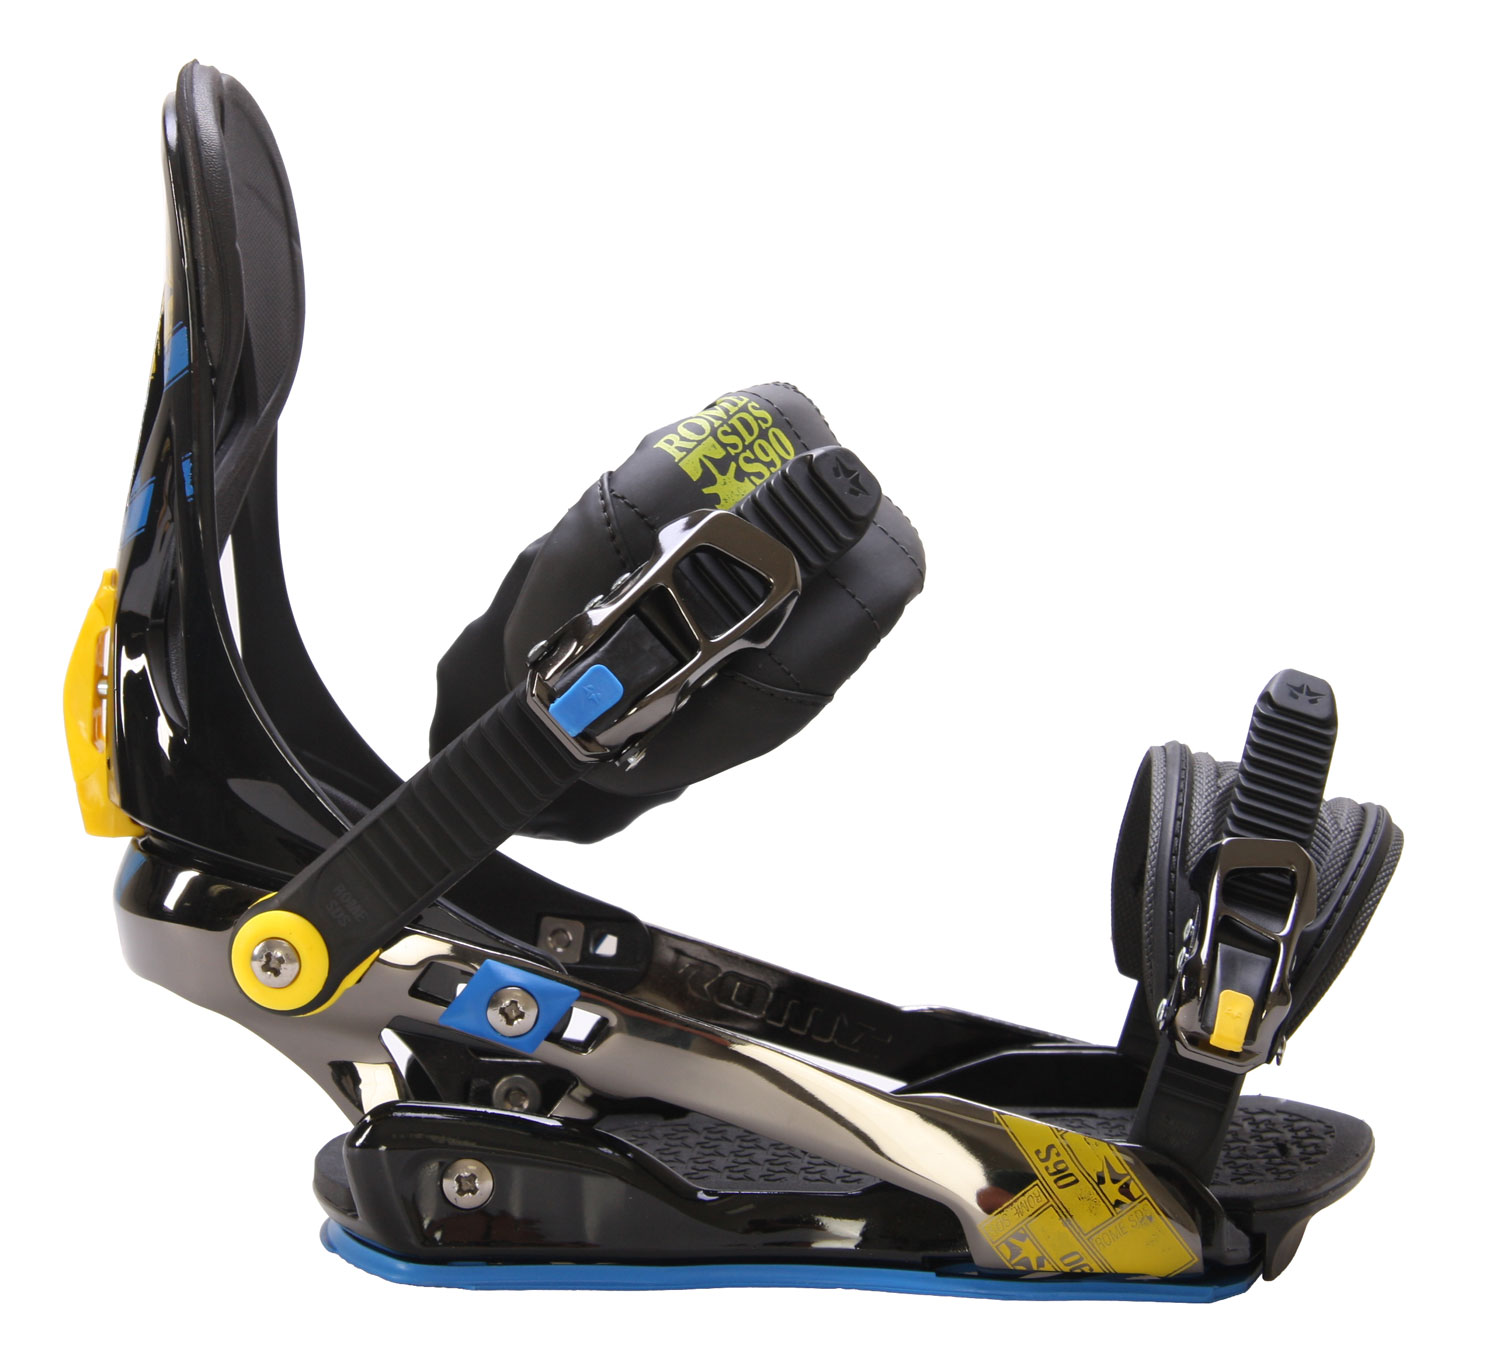 Snowboard The wait is finally over for the Rome S90 Snowboard Bindings! Rome and TruSnow set up this collaboration with you, the rider in mind. This super cush binding offers one of the most advanced strap systems available that while giving the rider the ultimate in comfort for a smooth damp ride, still keeps its response high for the aggressive and technical riders. The S90 snowboard binding really is the perfect binding. This all mountain freestyle binding is perfect for a blend of riding styles and conditions. Wether you are a park rider looking for forgiveness, or a black diamond bomber looking for control, the Rome S90 will be the last binding you will ever need.Key Features of the Rome S90 Snowboard Bindings:  New Highback: Ample coring for lightness and flexibility  Traditional Hybrid Baseplate  Contour Ankle Strap: The 3D shape and cold-resistant gel ensure a bio-correct fit with your ankle. Low-profile for greater freedom.  ConFormist.1 Toe Strap: Super conforming EVA for the best-fitting, lowest profile toe strap in snowboarding,  UnderWrap Heel Hoop: A ton of leverage over both edges with side-to-side freedom; the most powerful of the UnderWrap designs  SubBase Pad: Takes the edge off hard landings and reduces vibration  Adjustable Toe and Heel Ramp: Customized fit to the length and shape of your boot  QuickStrap.2 Technology: Tool-free strap length adjustment. Screw screws.  QuickLock Forward Lean: Tool-free forward lean adjustment  9Times Ankle Strap Positioning: You decide how much ankle support you want  Highback Rotation: 0degrees to 12degrees of rotation places power where you like it - $95.95